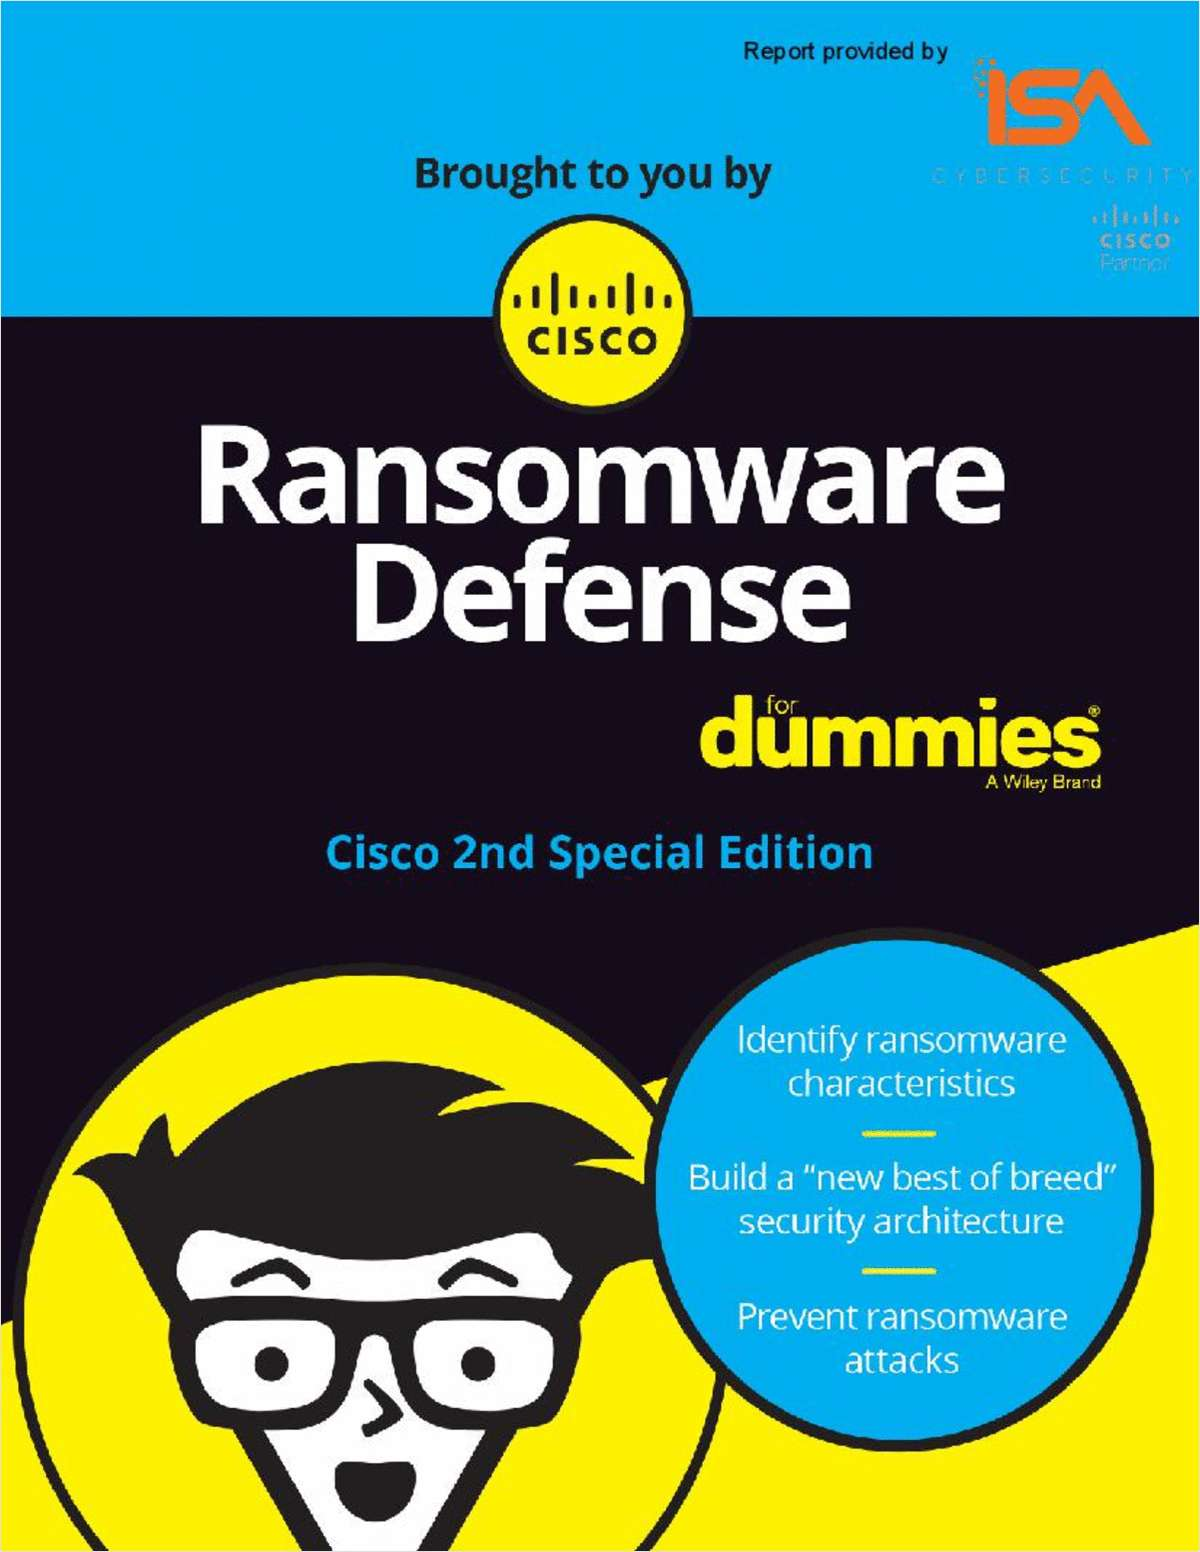 Ransomware Defense for Dummies Ebook